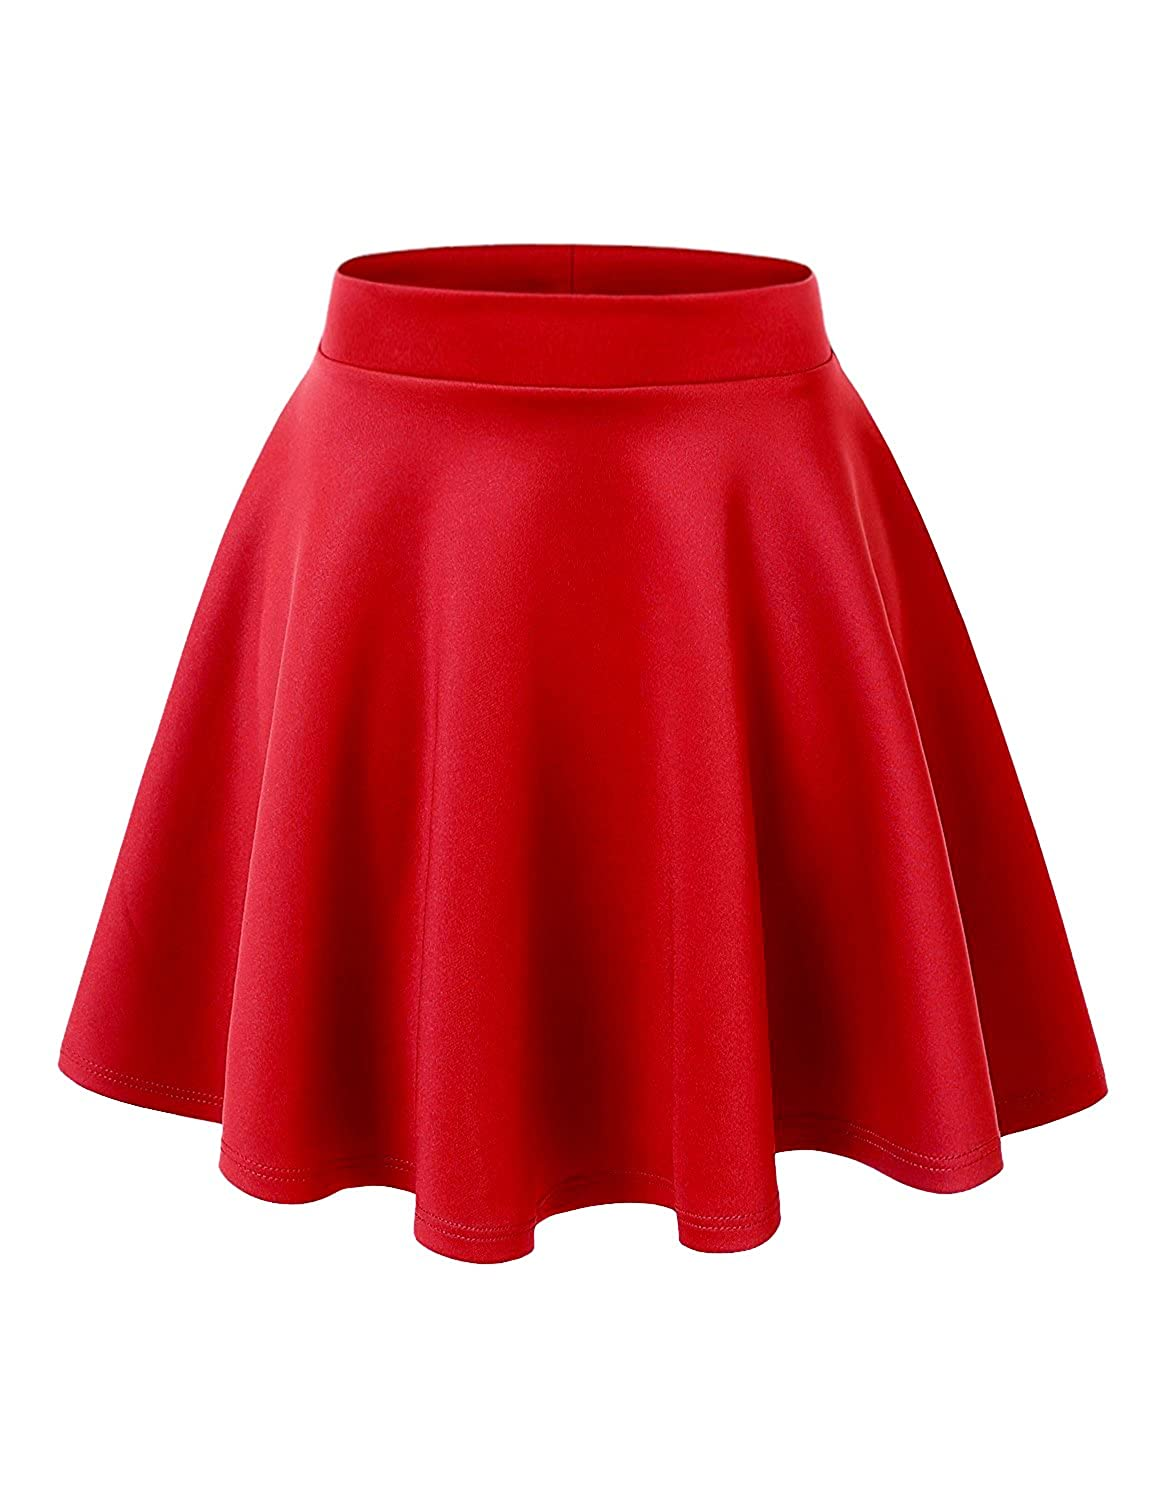 Regna X Womens Flare A Line Skirt 2 Piece and Skater Skirt (2 Styles, Plus 8BKAS17004BEX_M